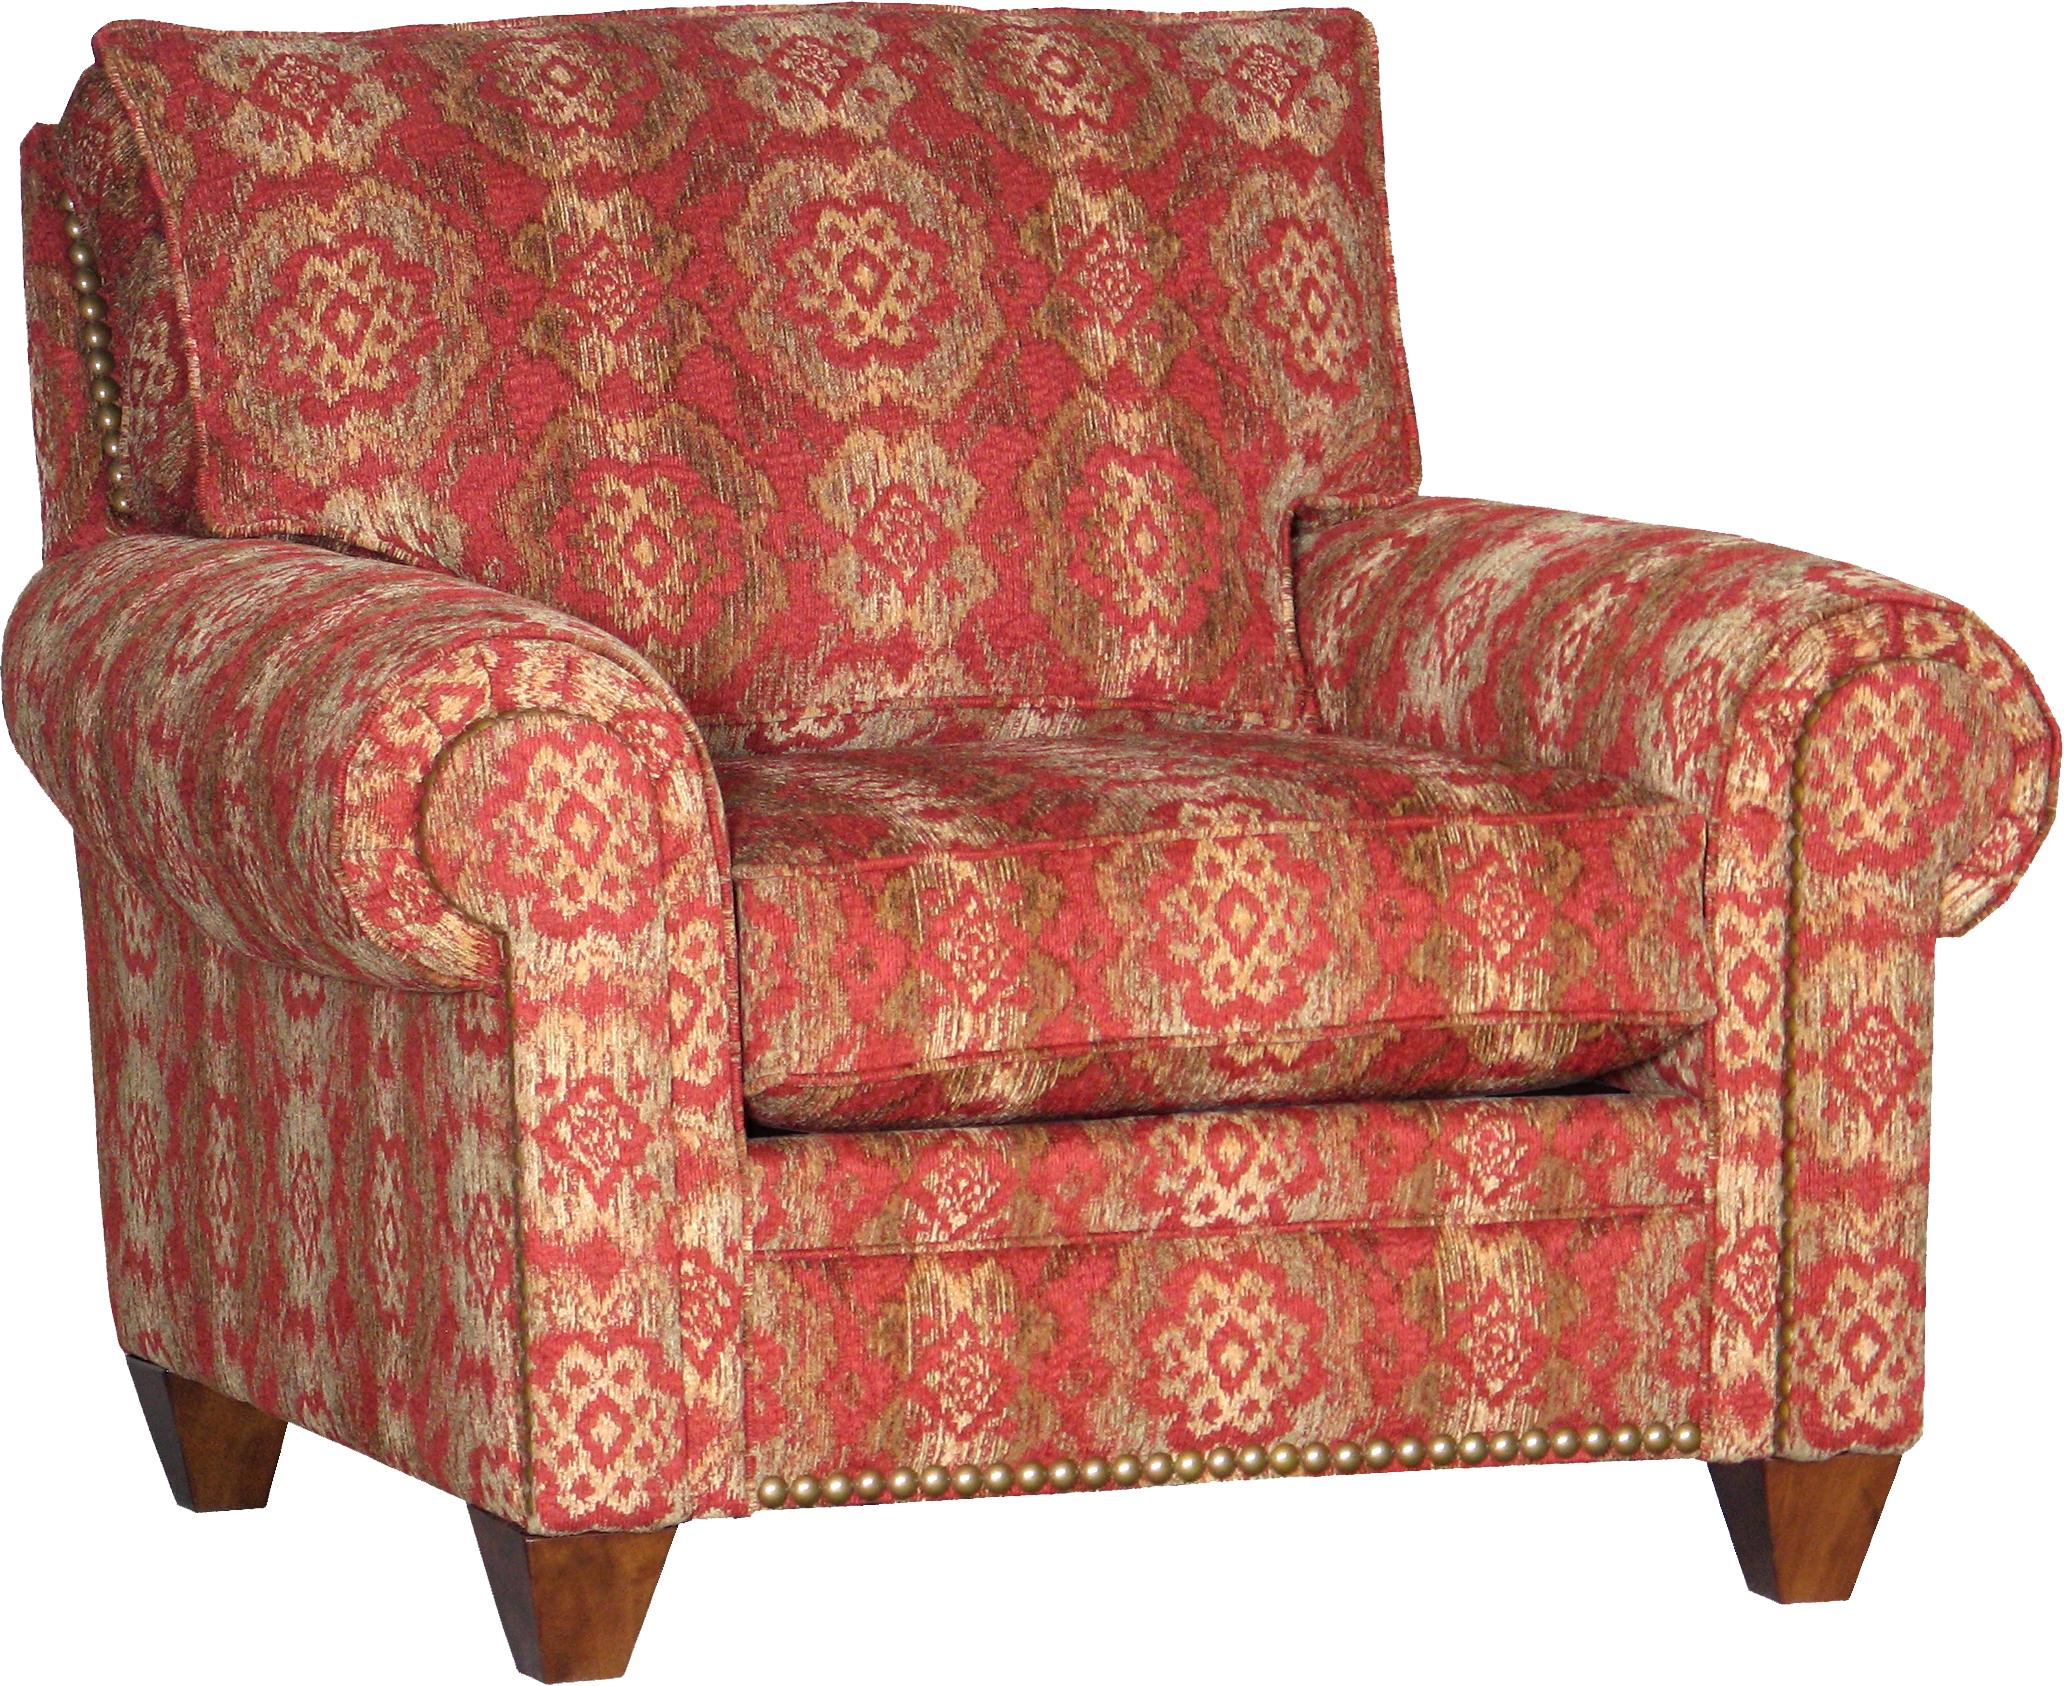 Mayo 2840 Chair - Item Number: 2840-040